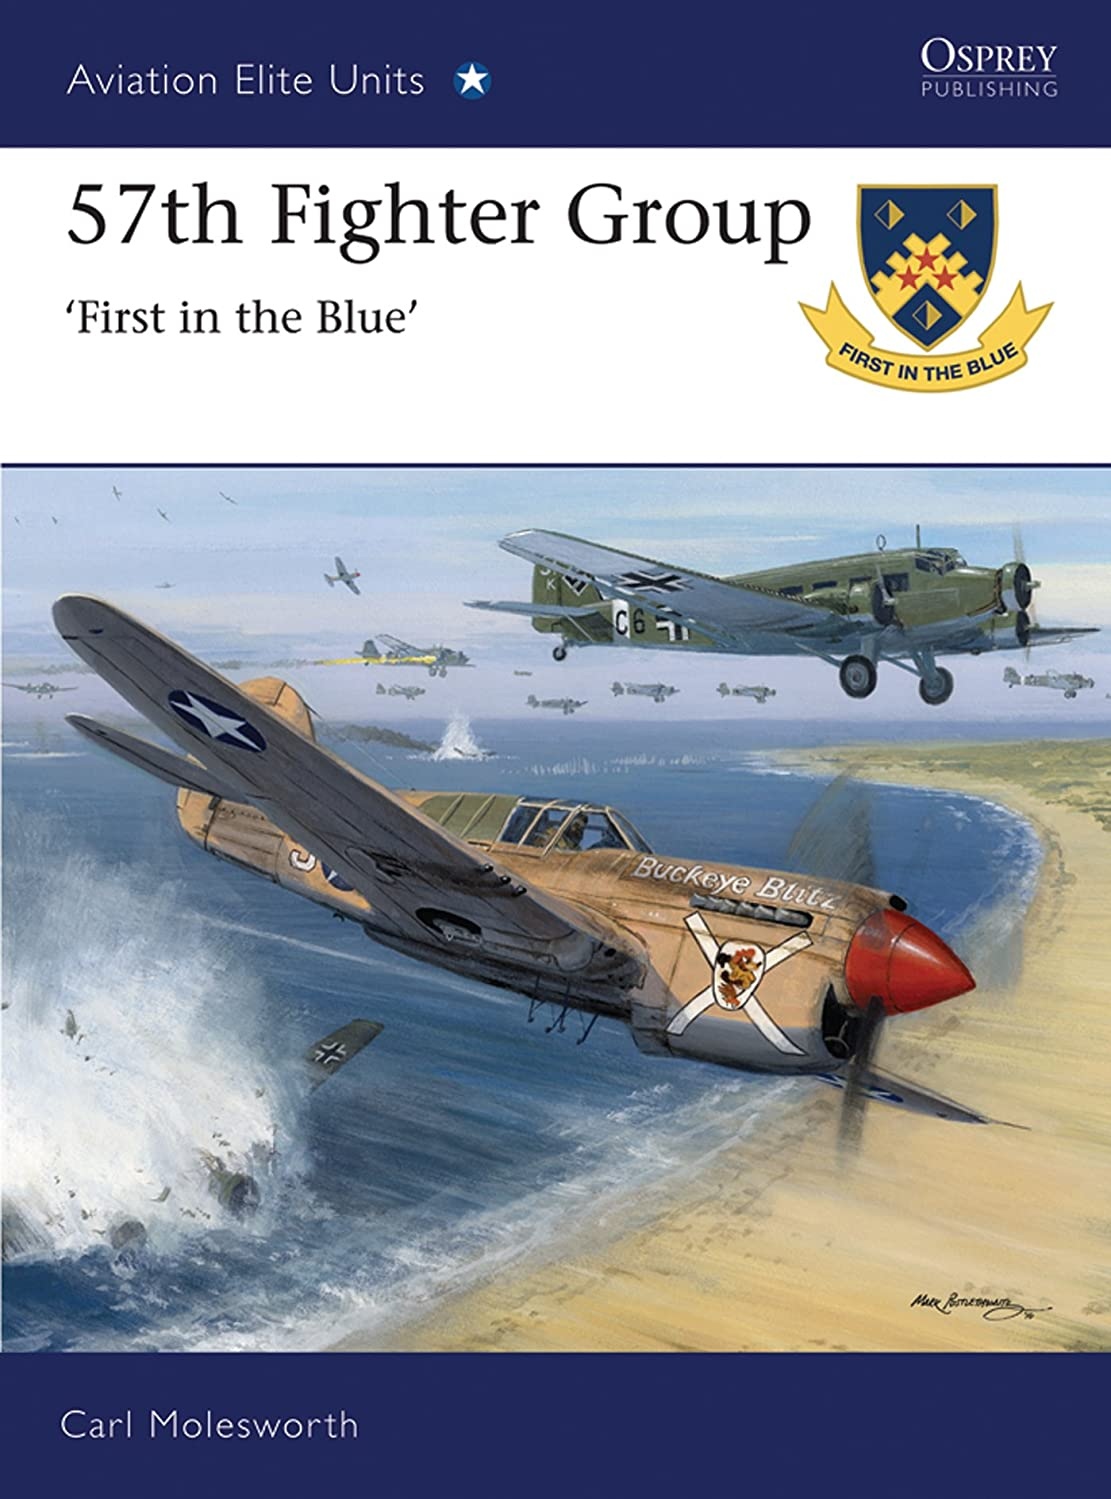 感情の正規化解体する57th Fighter Group: First in the Blue (Aviation Elite Units Book 39) (English Edition)